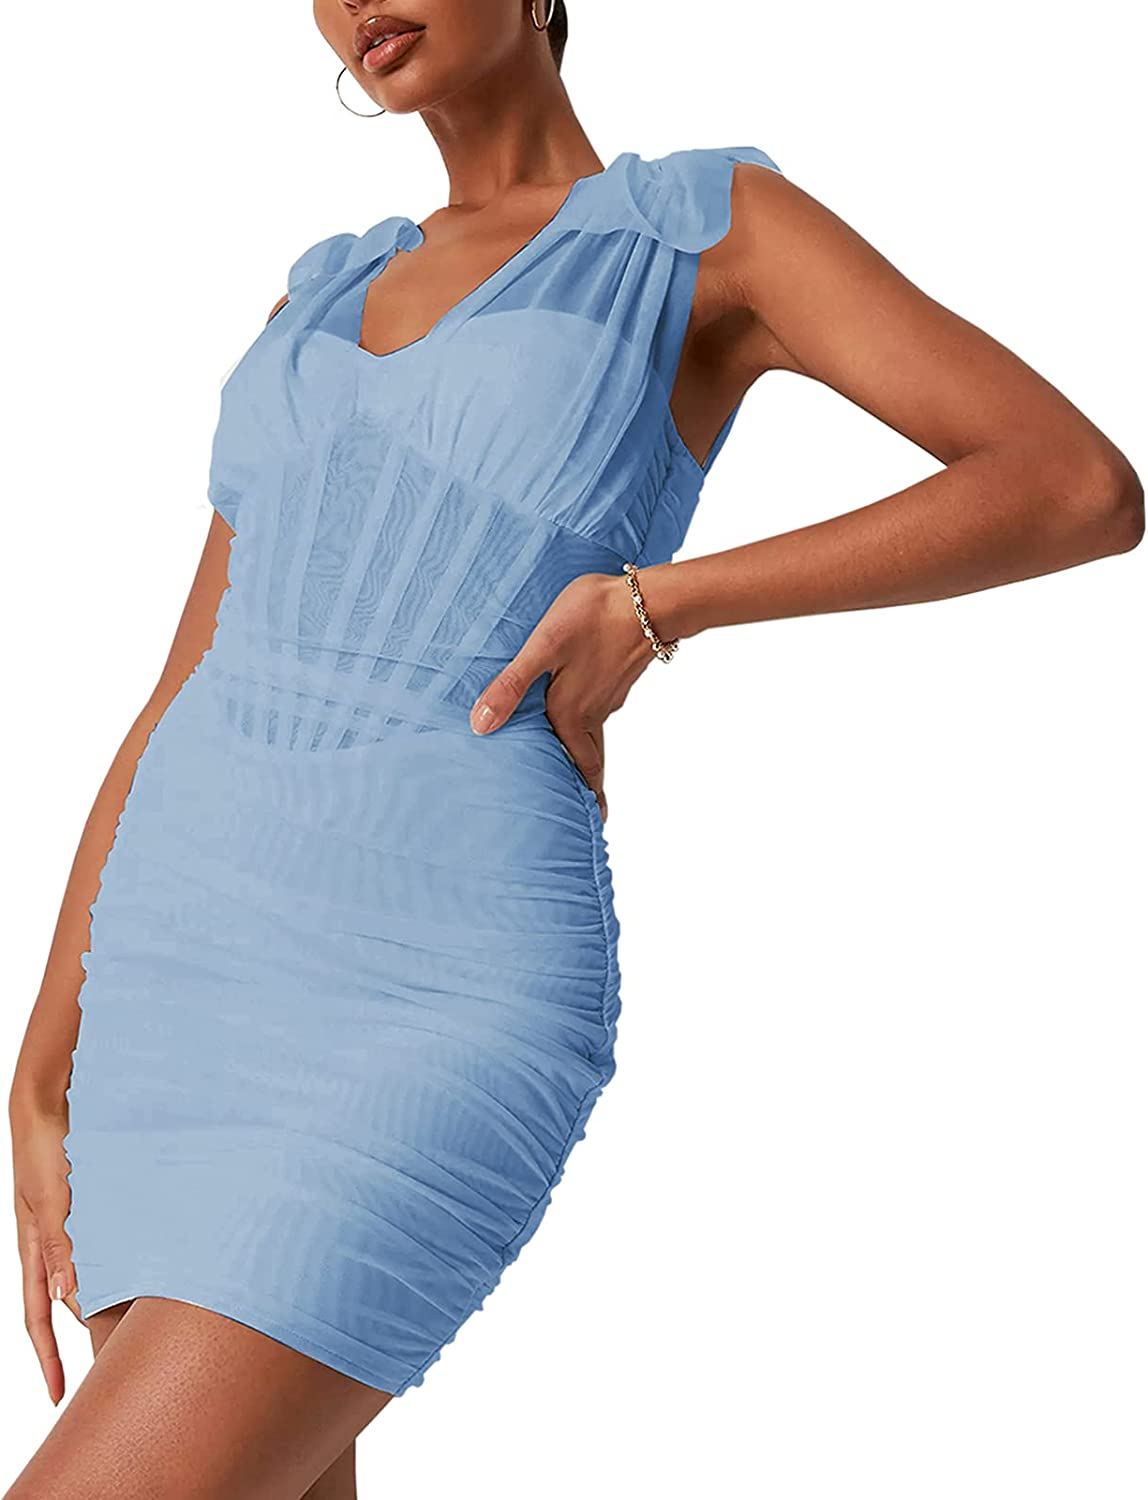 HOMELEX Women's Sexy Corsets Dress Strap It is very popular Spaghetti Mini Free shipping anywhere in the nation Bodycon